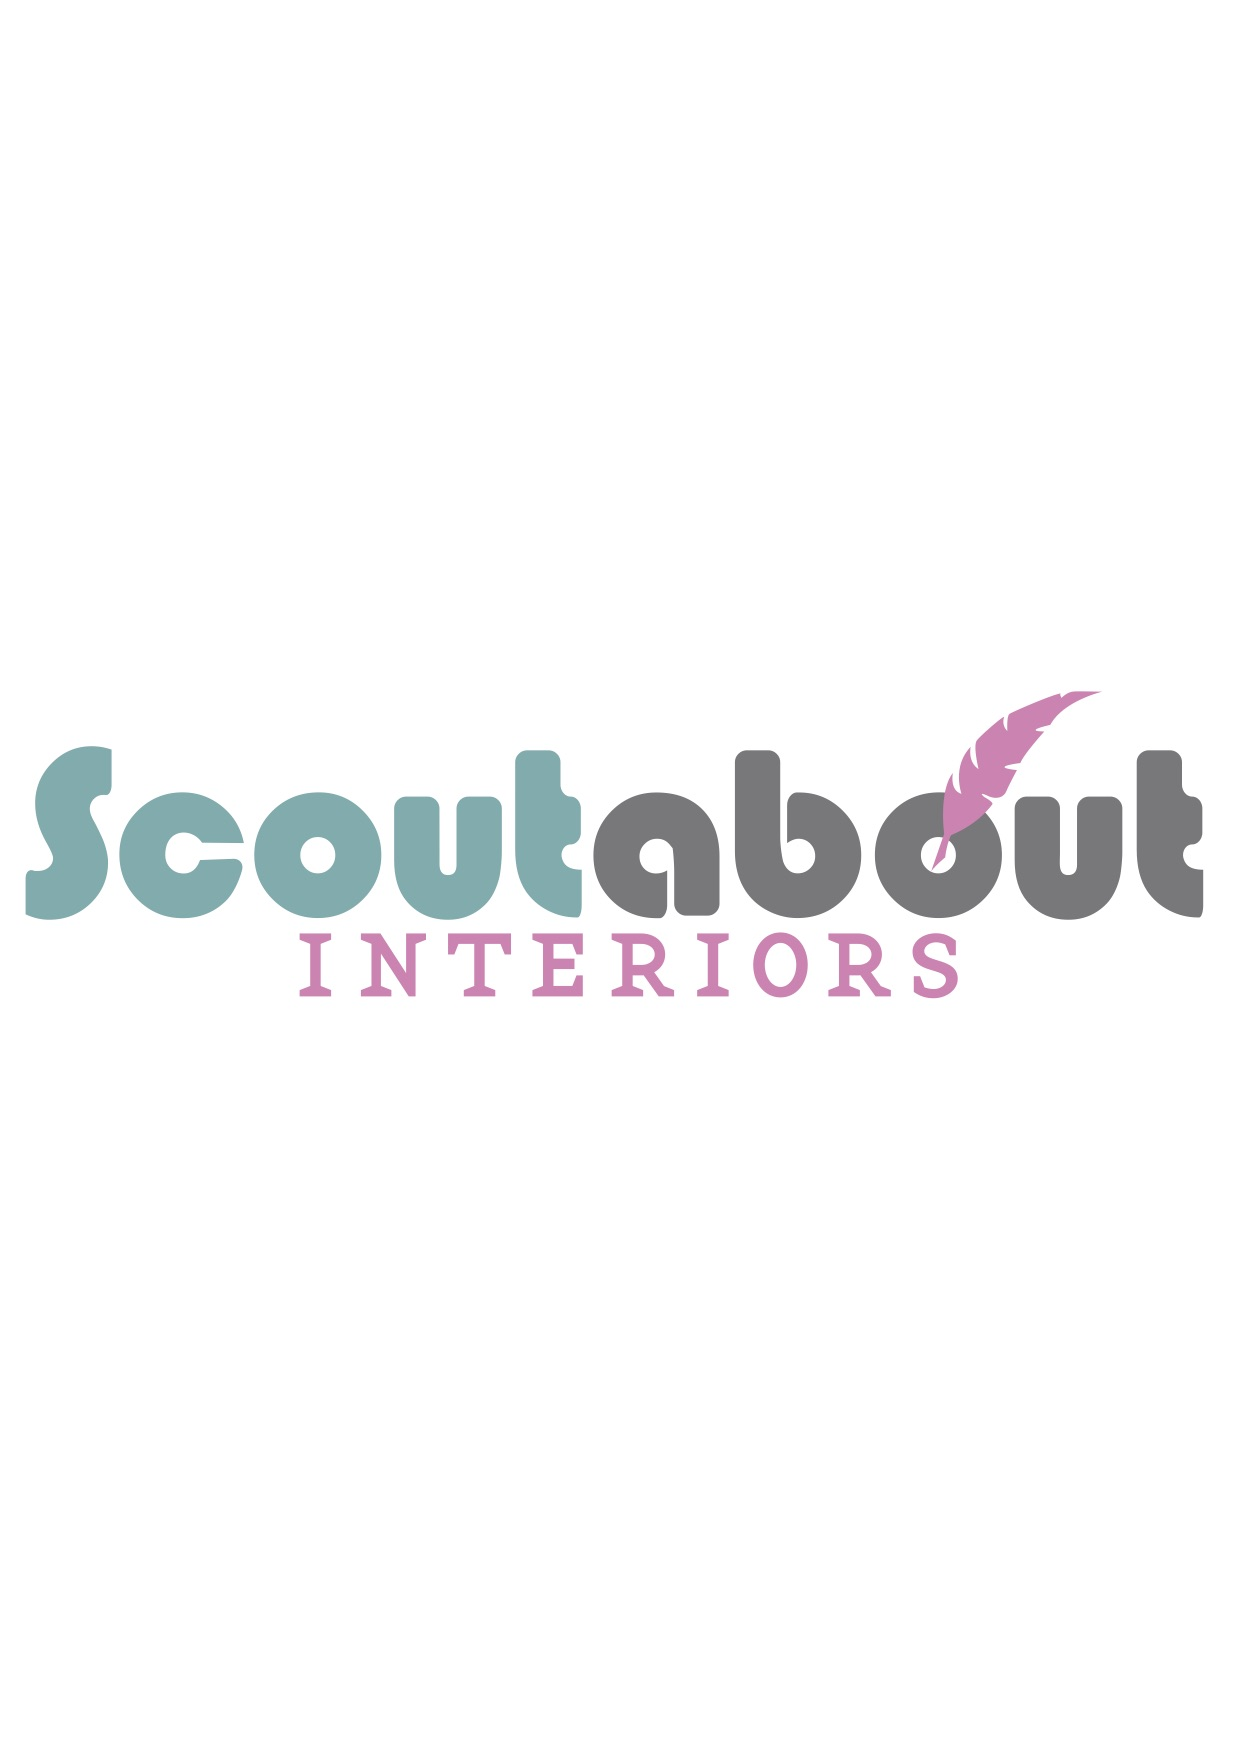 Read Scoutabout Interiors Reviews